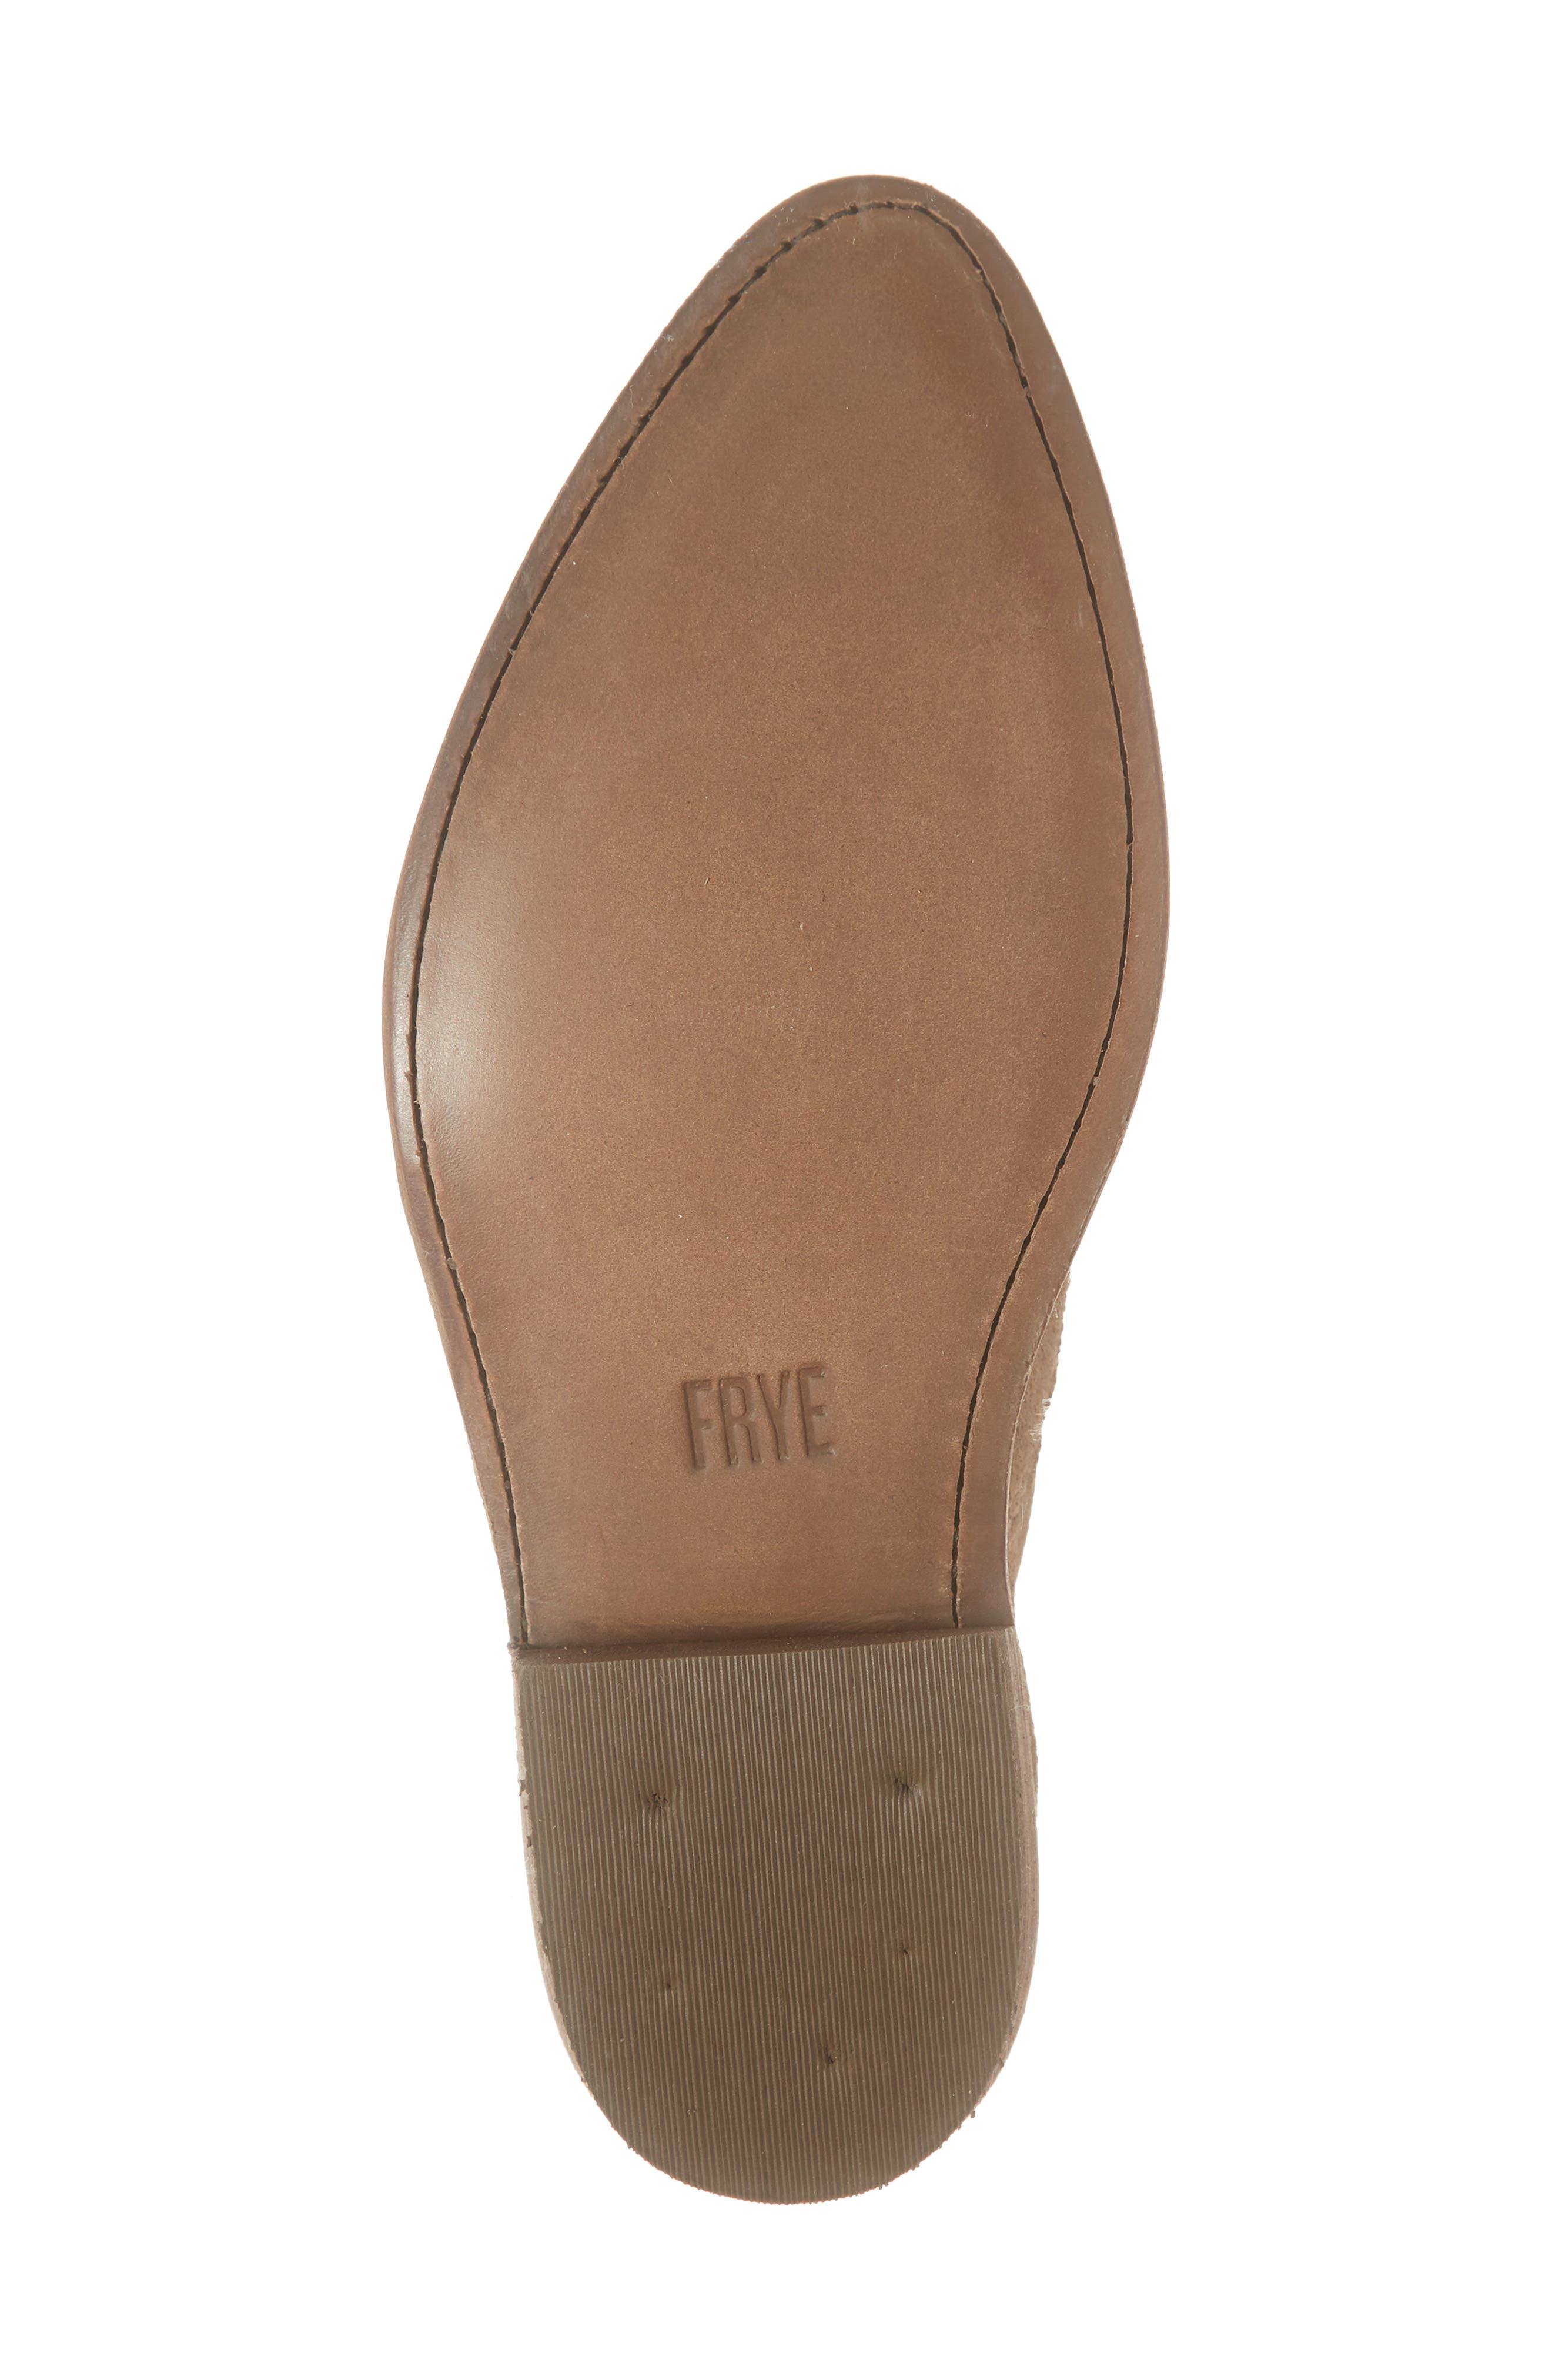 FRYE, Billy Western Bootie, Alternate thumbnail 6, color, 250